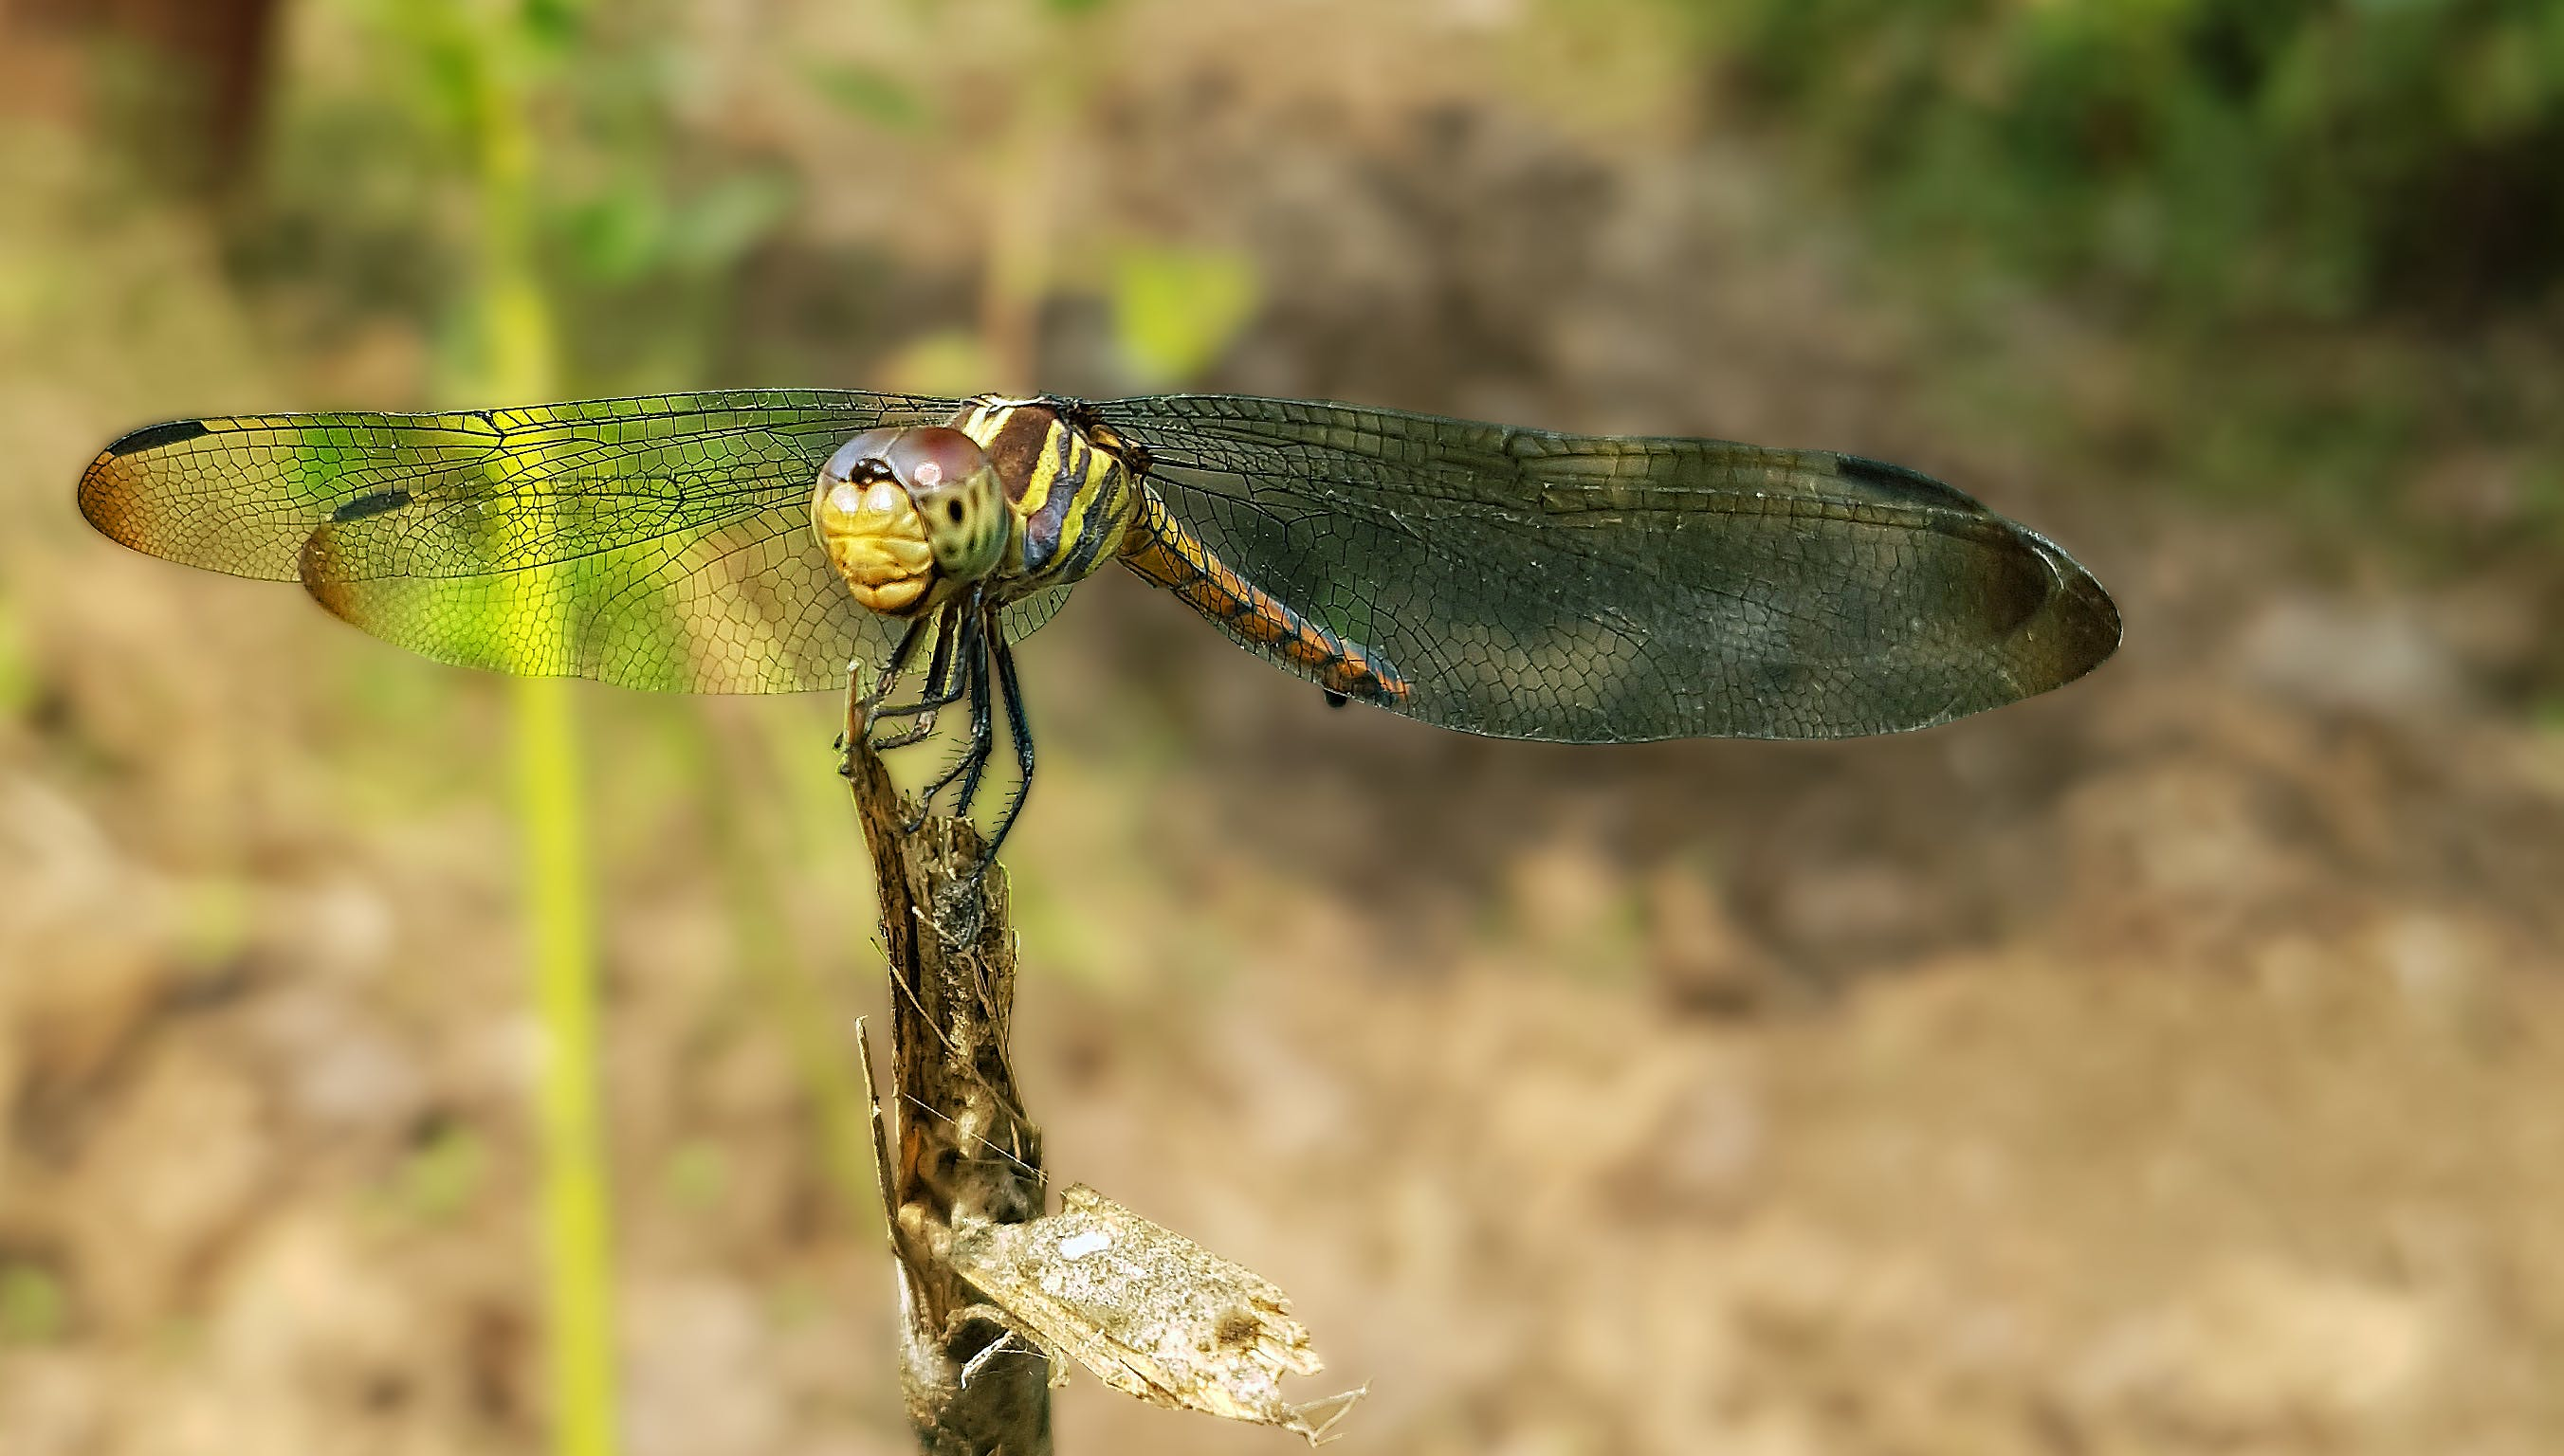 Green Dragonfly Perched on Brown Stem in Closeup Photography